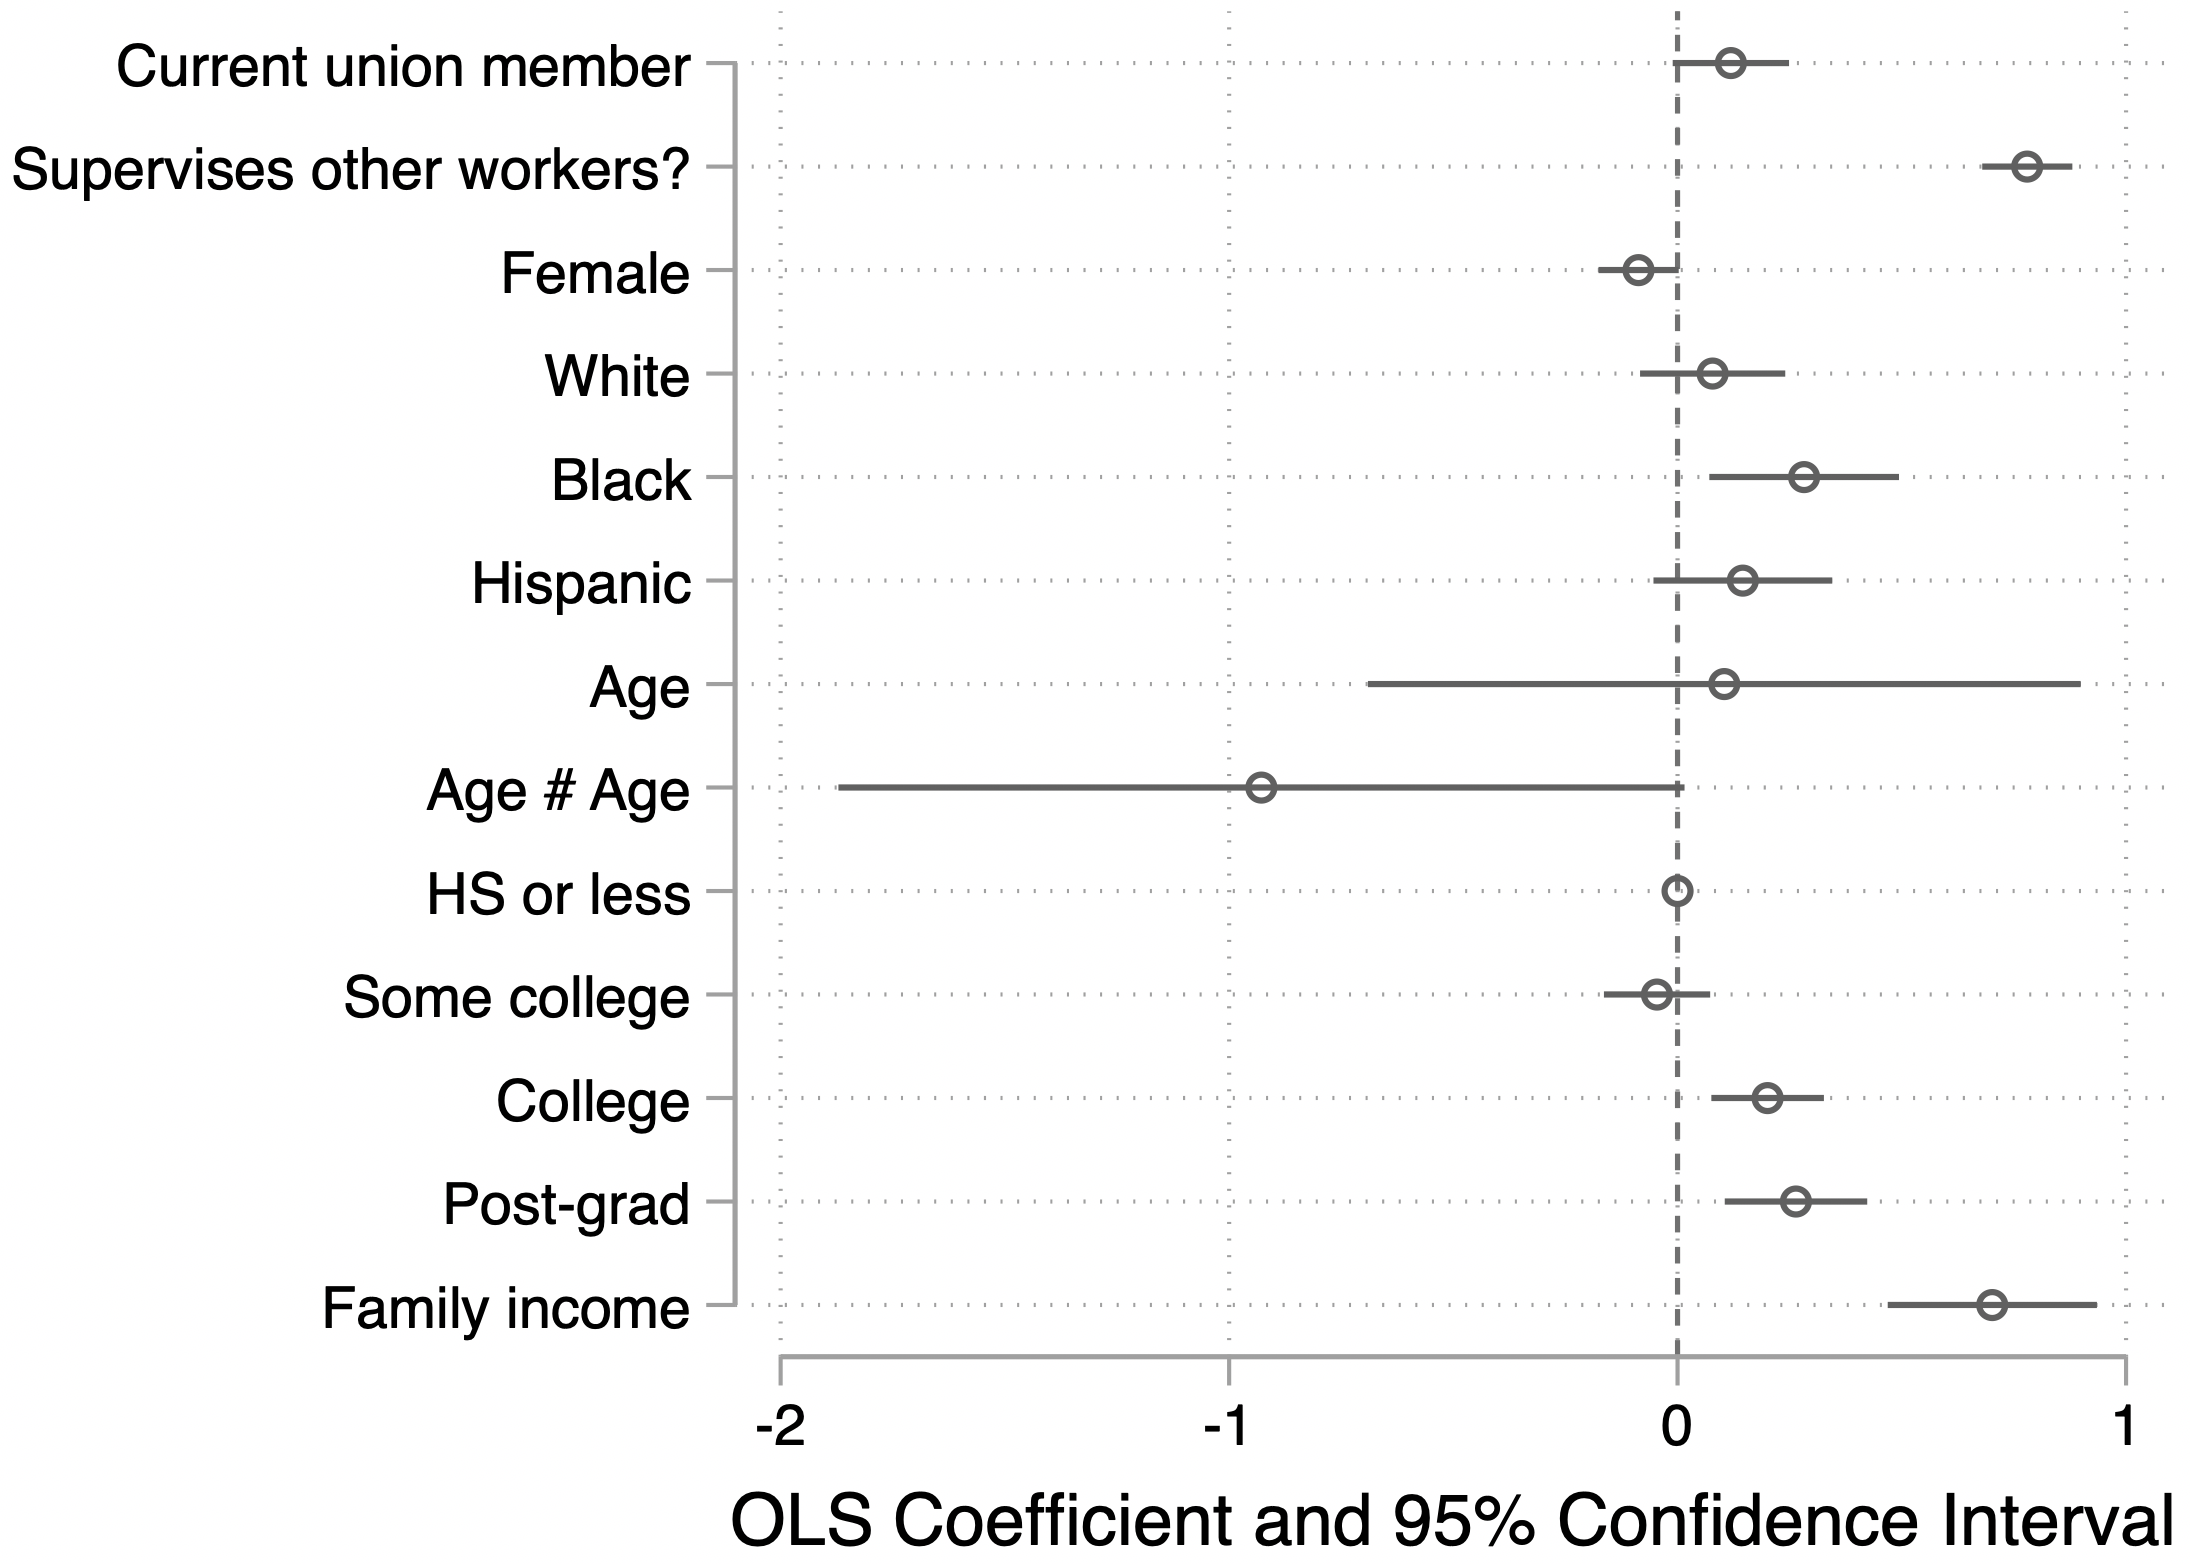 Predicting use of politically relevant skills at work (1-4 scale): Union membership as predictor